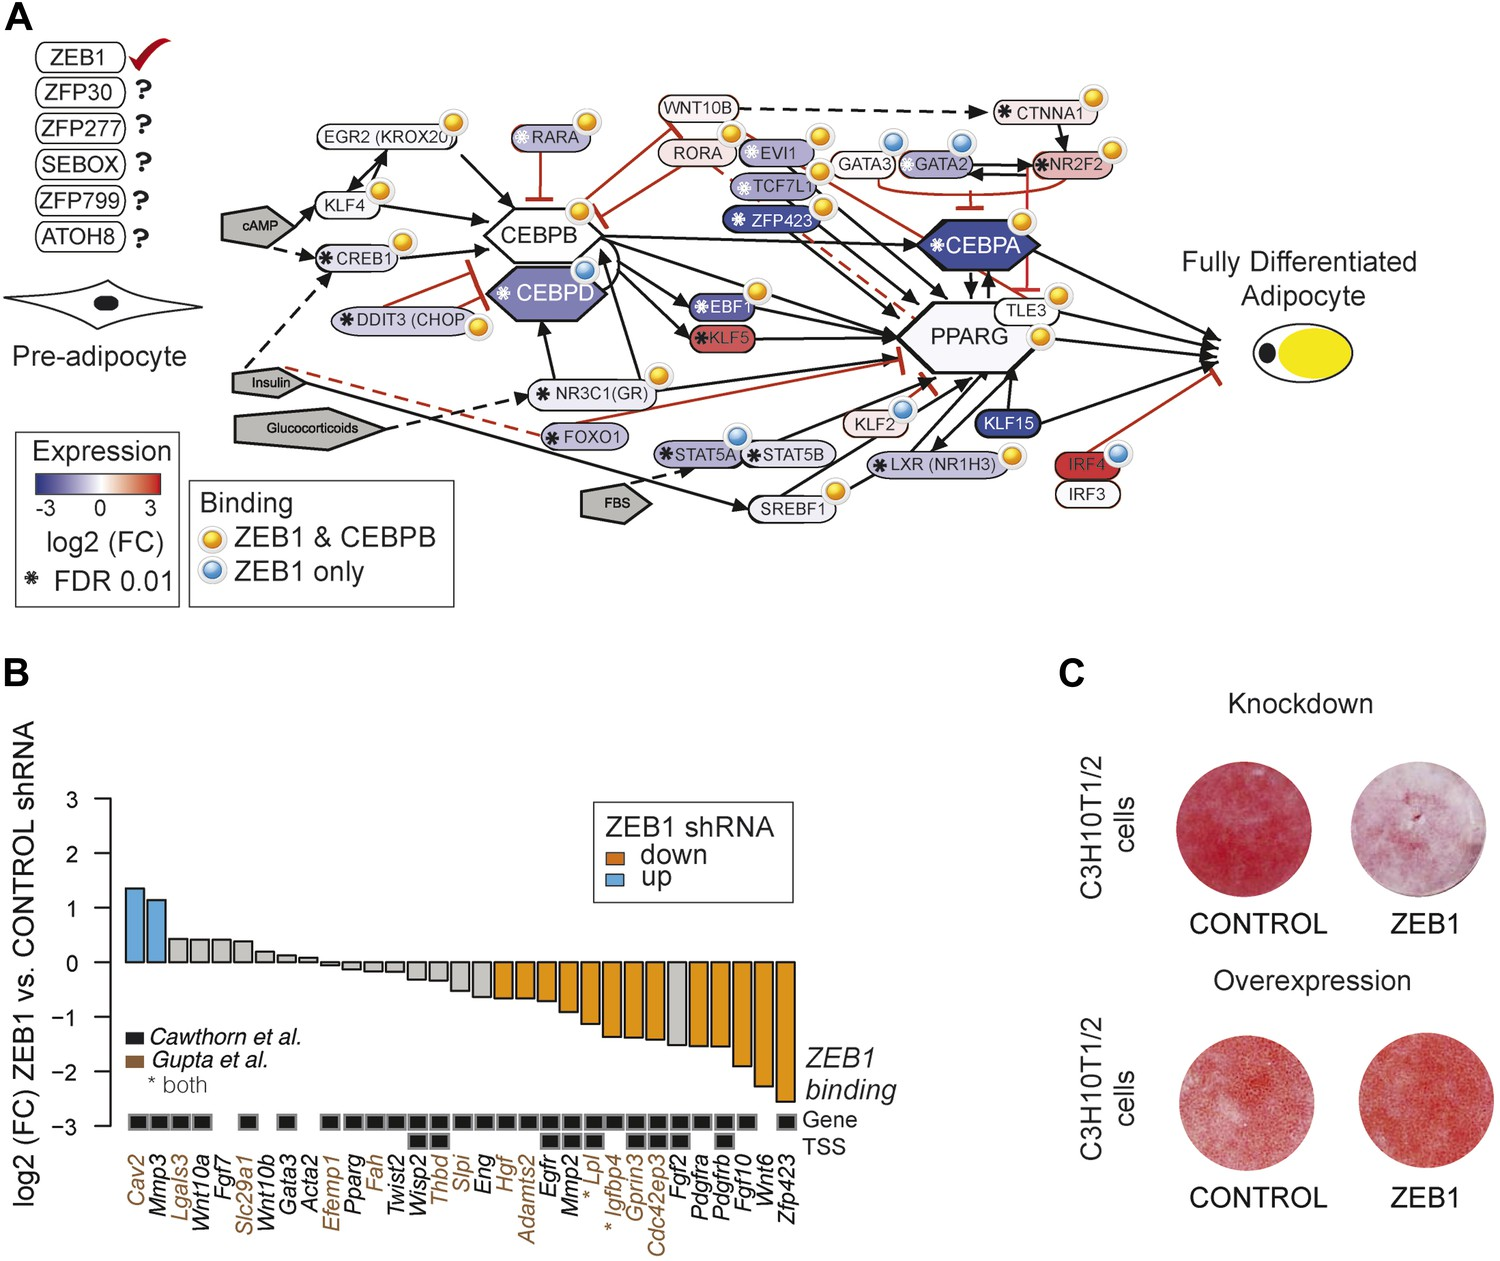 Identification of the transcription factor ZEB1 as a central